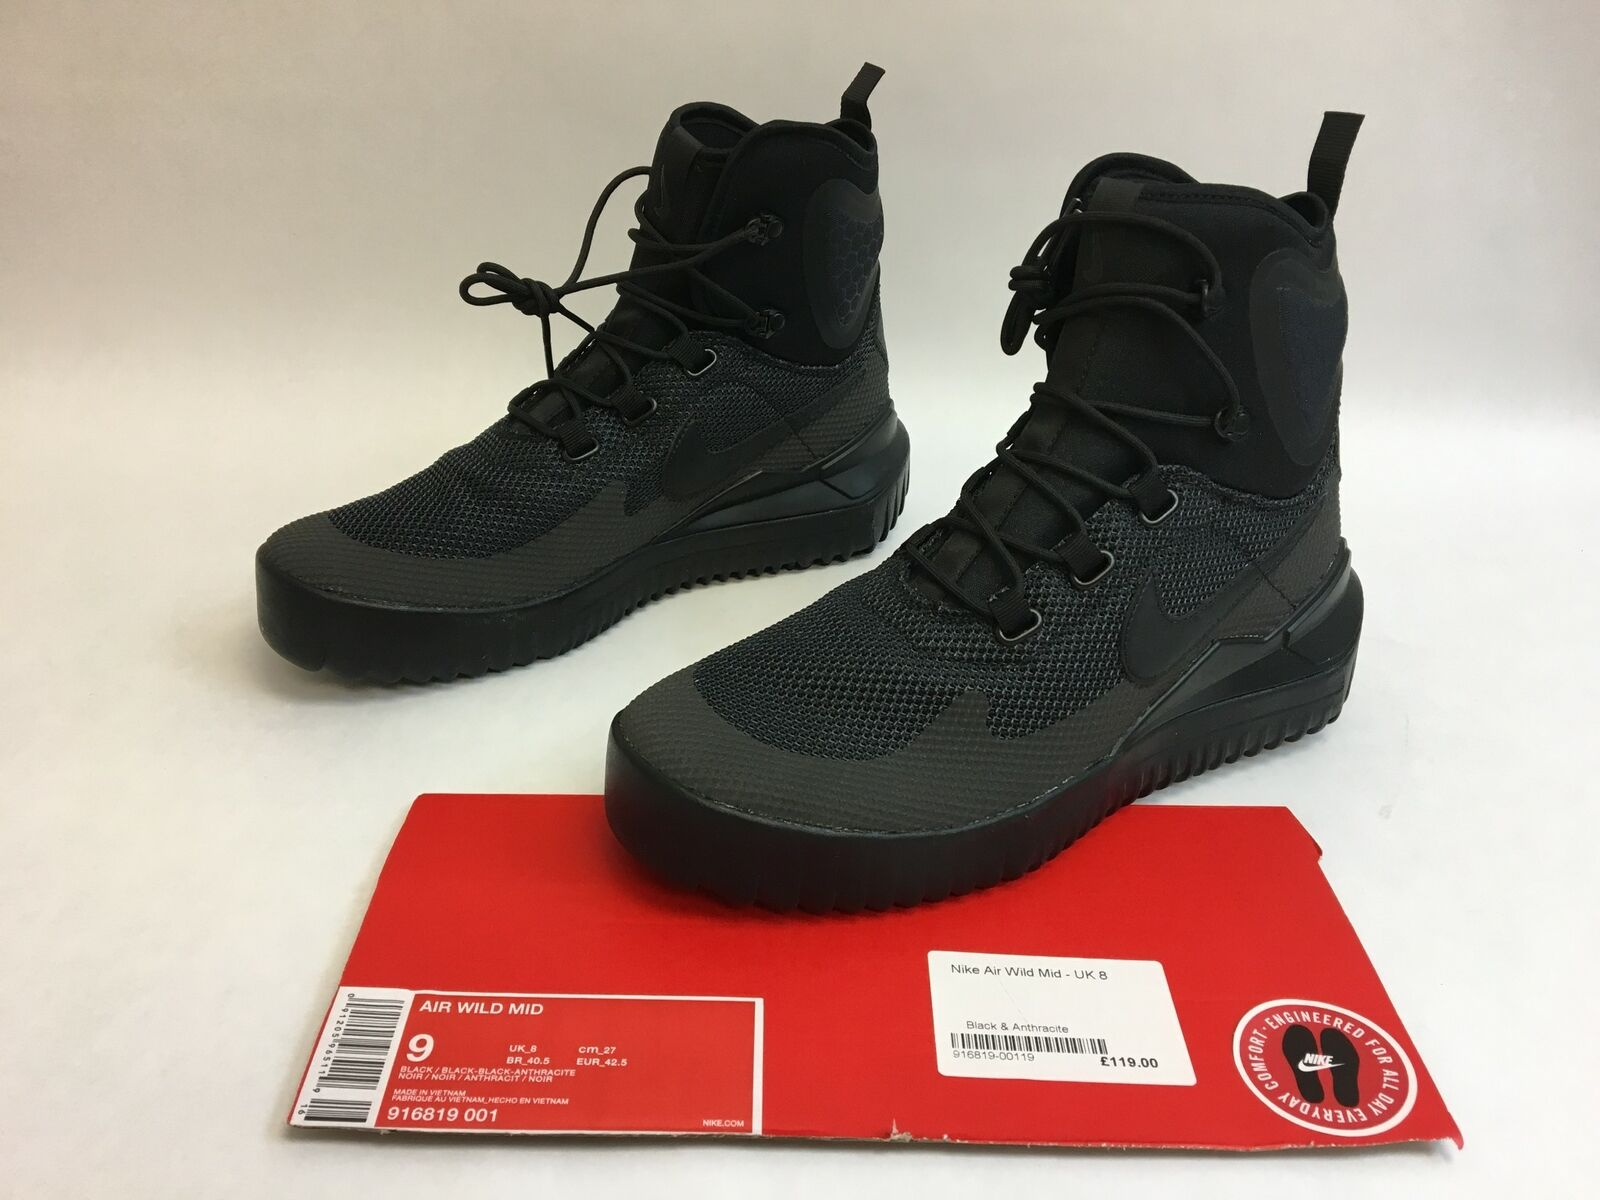 quality design fa9c6 728d9 Nike Air Wild Mid Mid Mid Triple All Black Anthracite Boots Mens Size 9  Model 916819